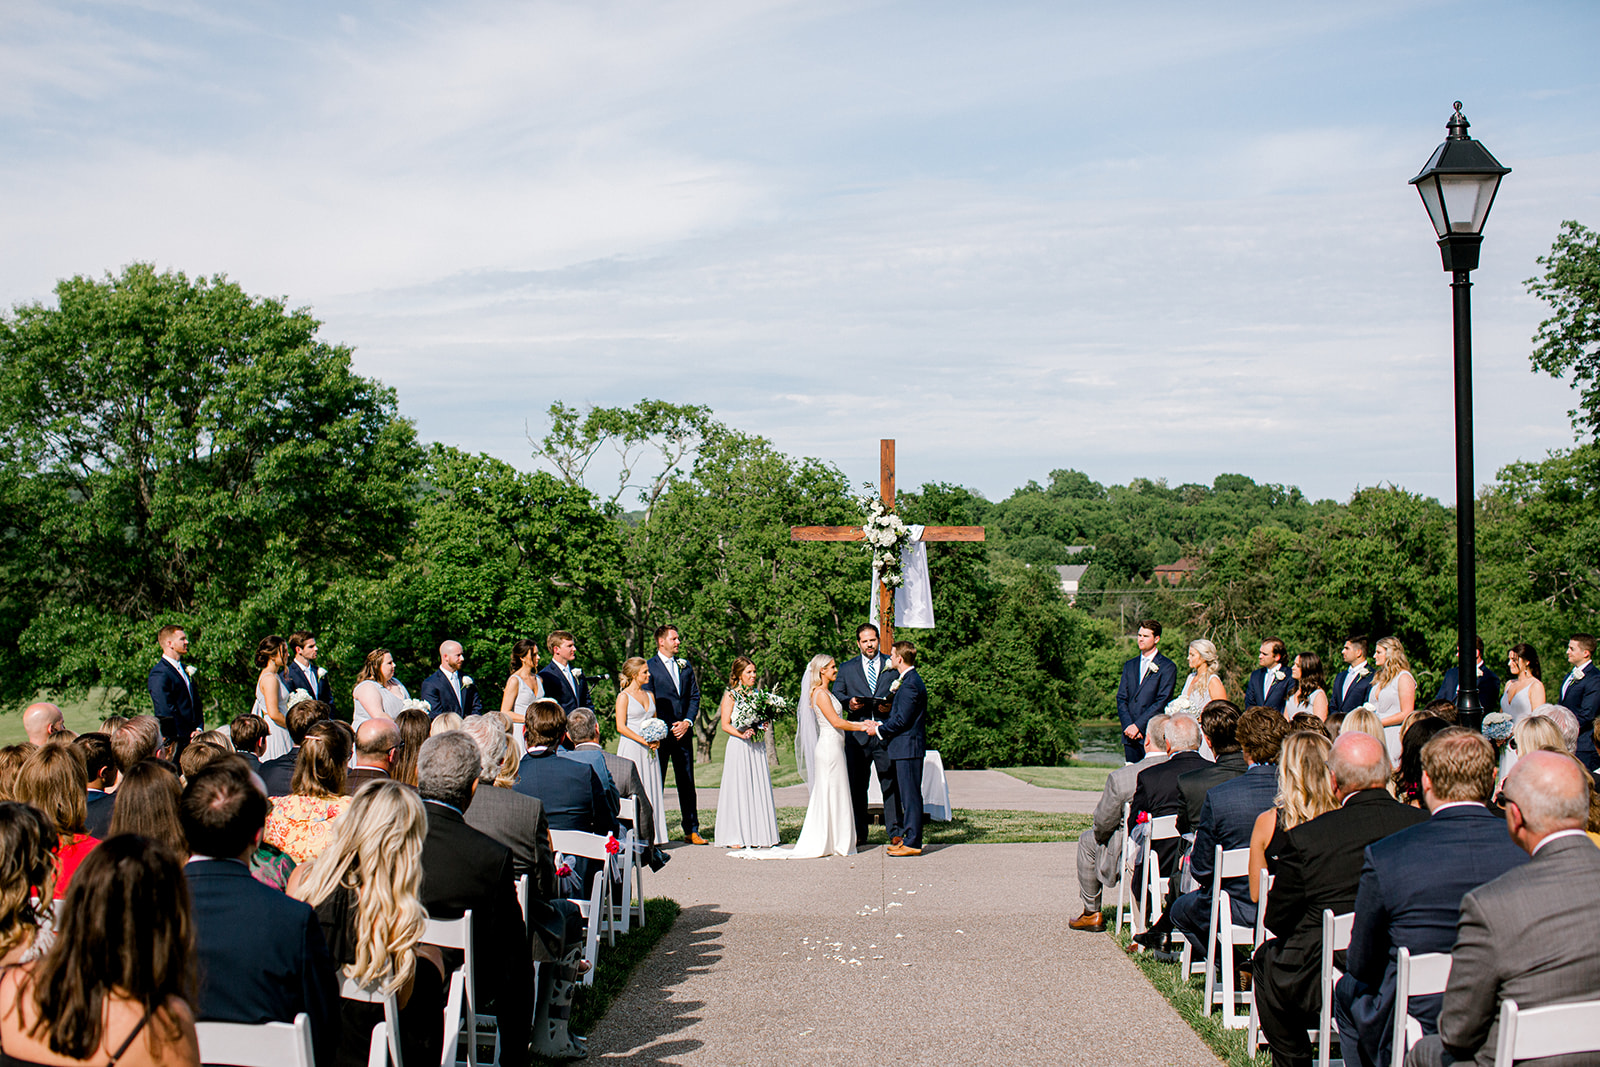 Outdoor wedding ceremony at Ravenswood Mansion